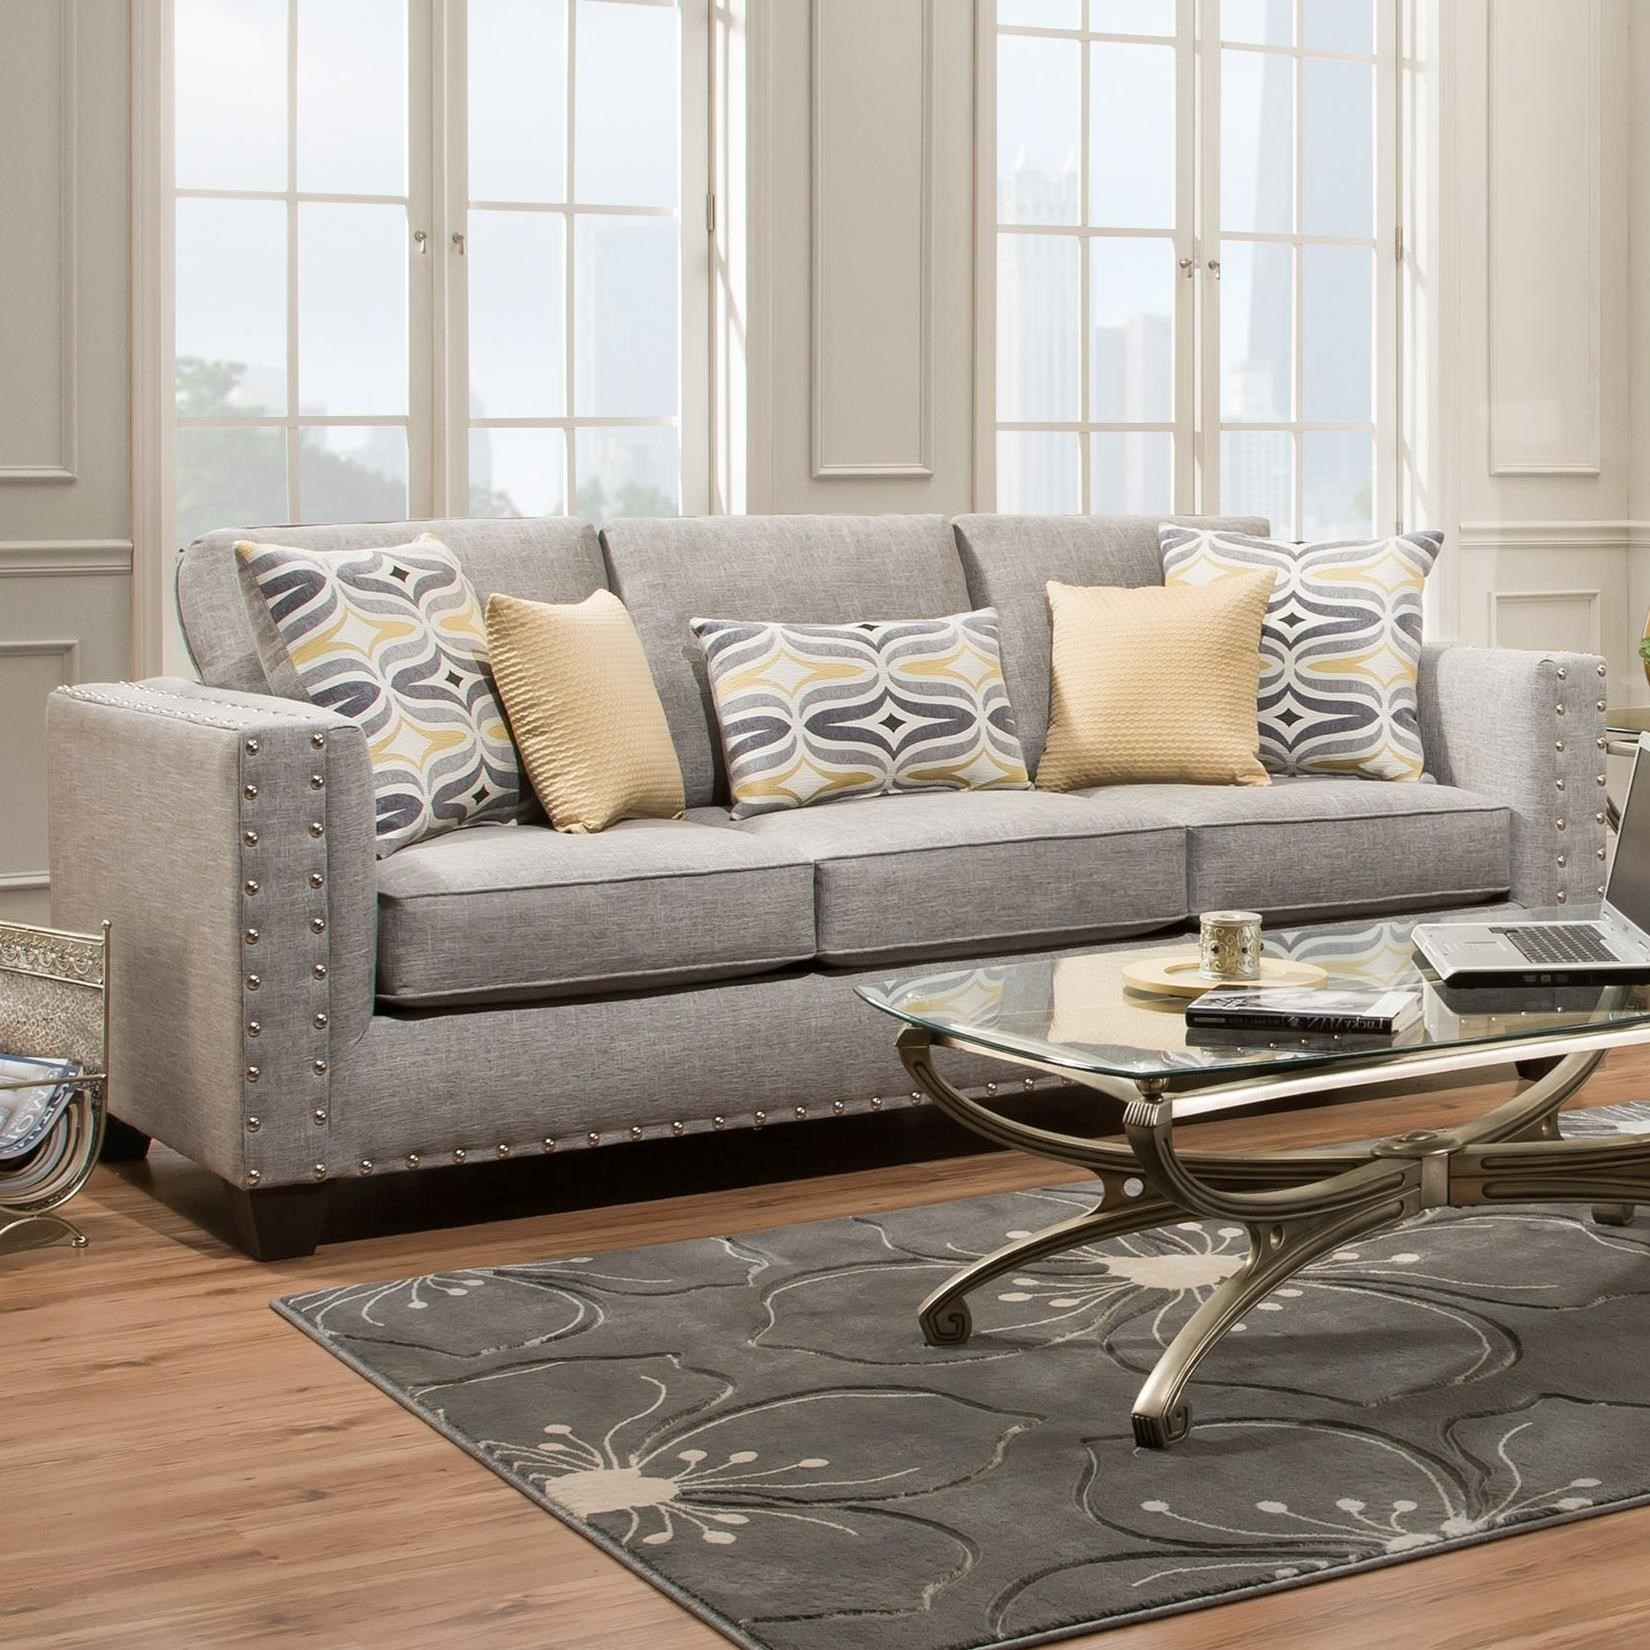 American Furniture 1700 Contemporary Sofa Miskelly Furniture Sofas